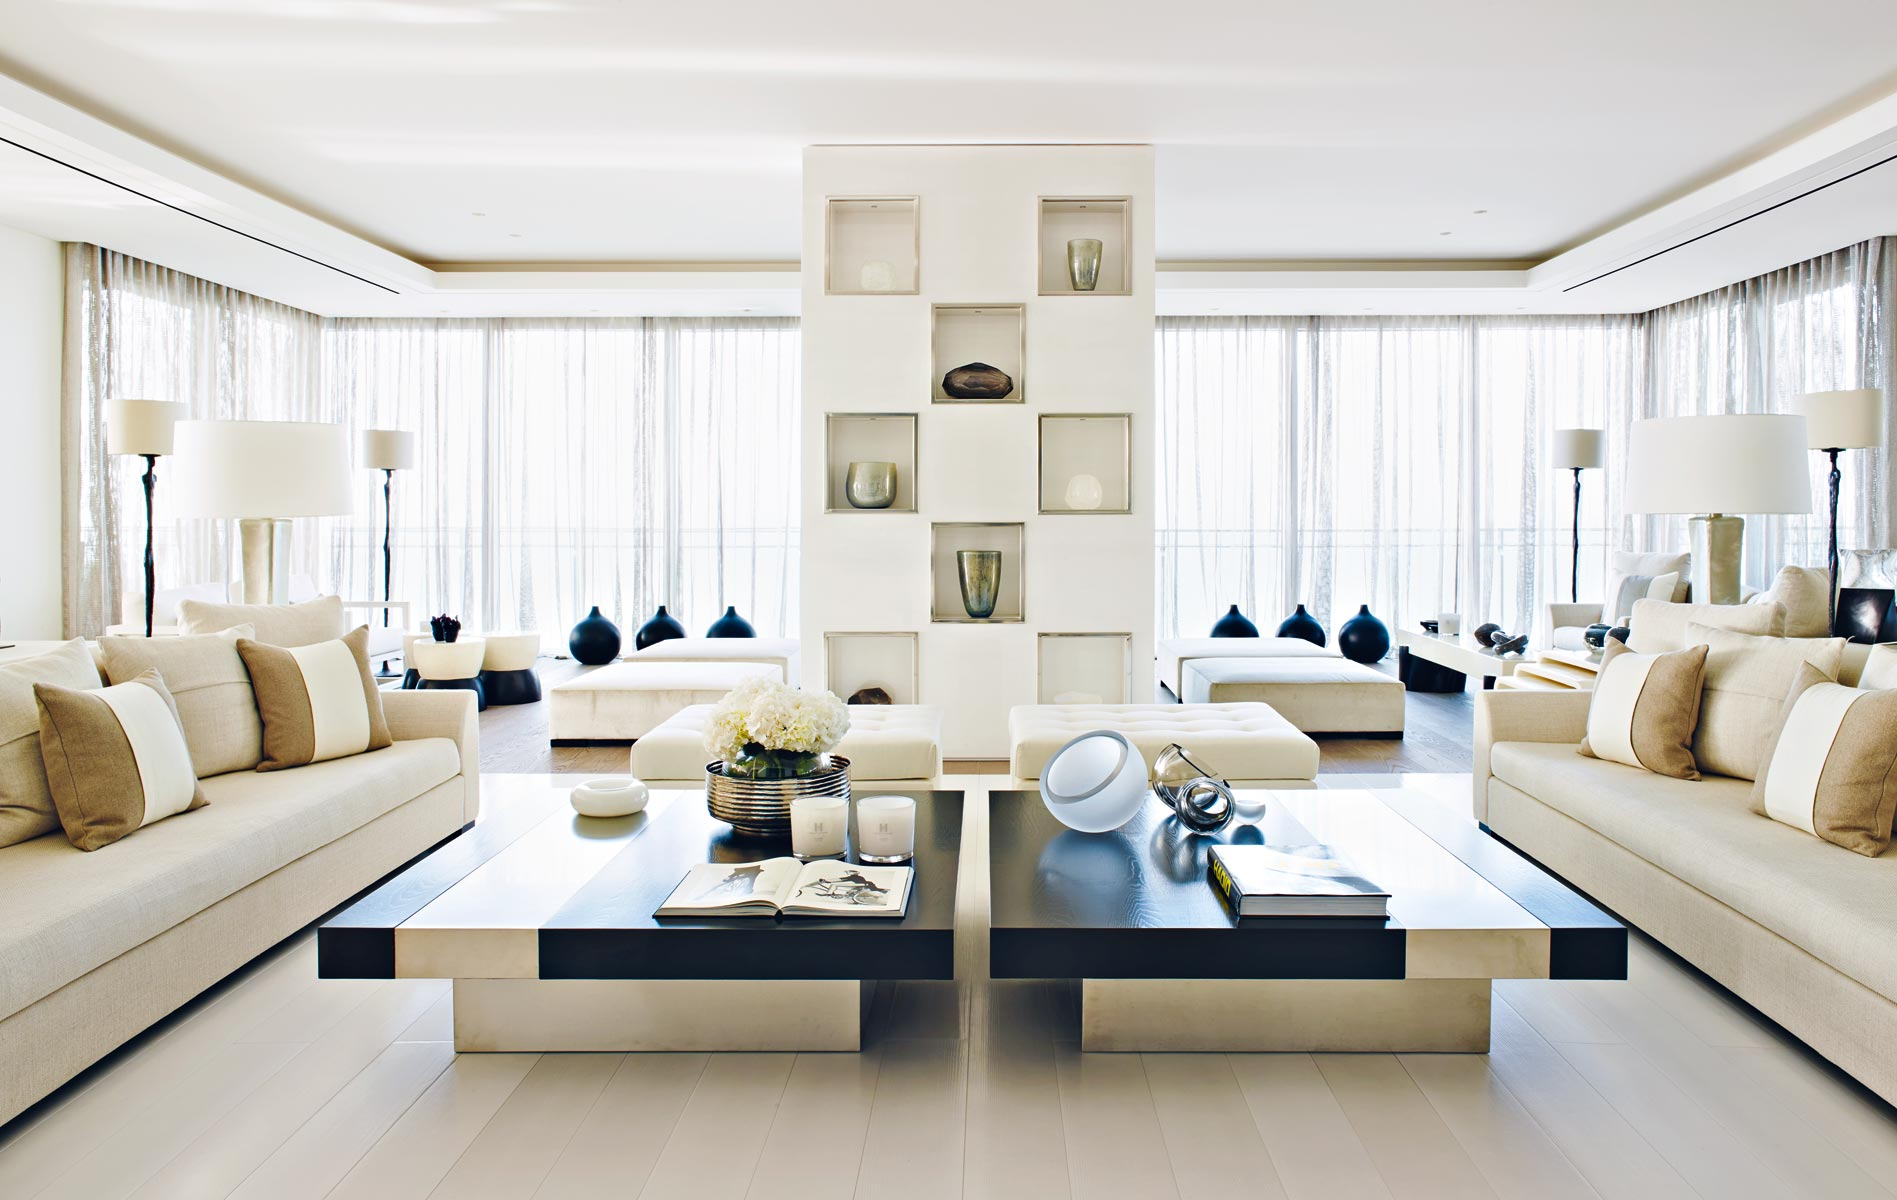 collect idea spectacular lighting design skli. Stunning Living Room Designed By Kelly Hoppen Top 10 Design Ideas Collect Idea Spectacular Lighting Skli